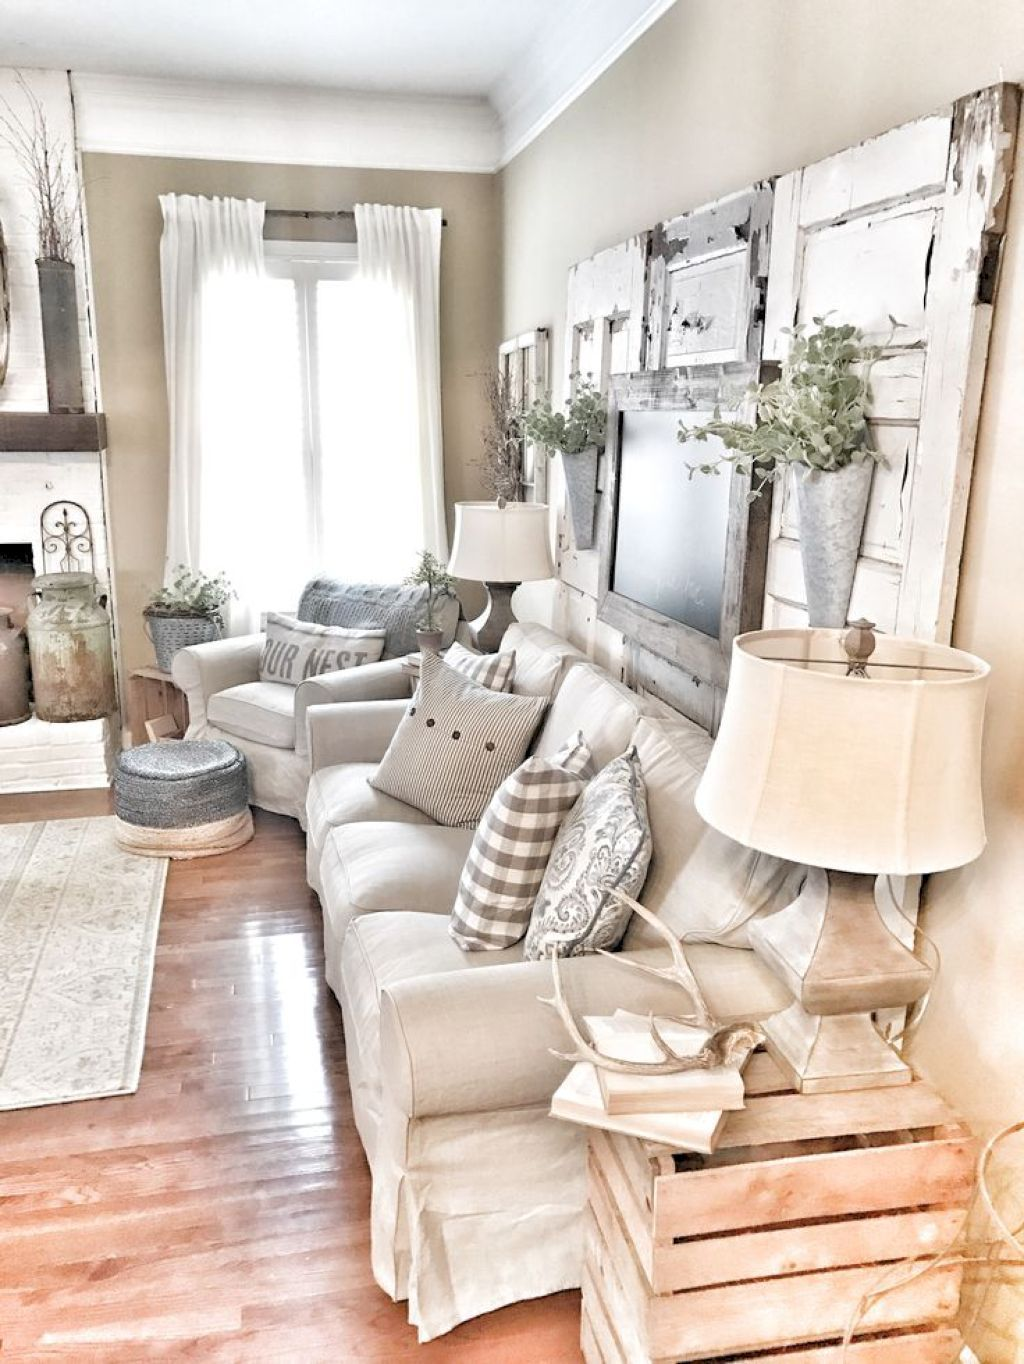 30 Rustic Farmhouse Living Room Decor Ideas